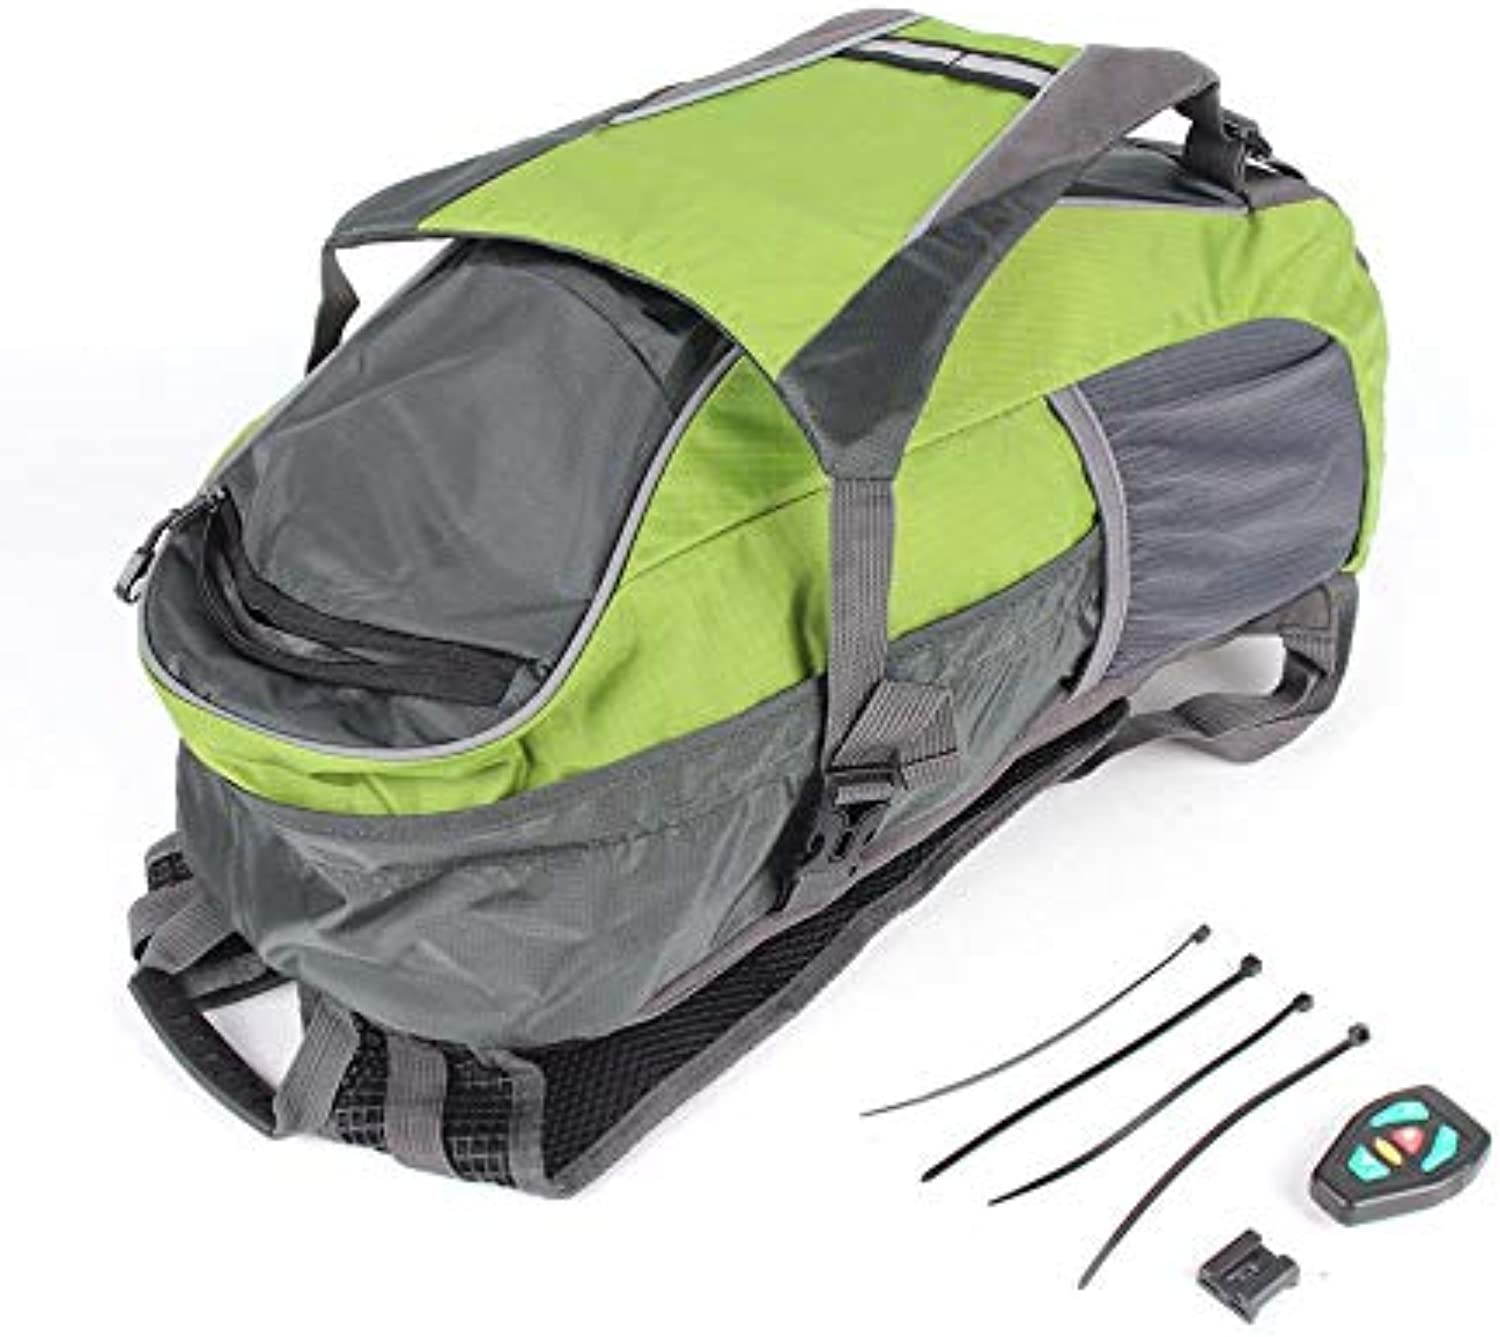 LED Turn Signal Light Reflective Vest Backpack Waist Pack Business Travel Laptop Bag Sport Outdoor Waterproof Night Cycling